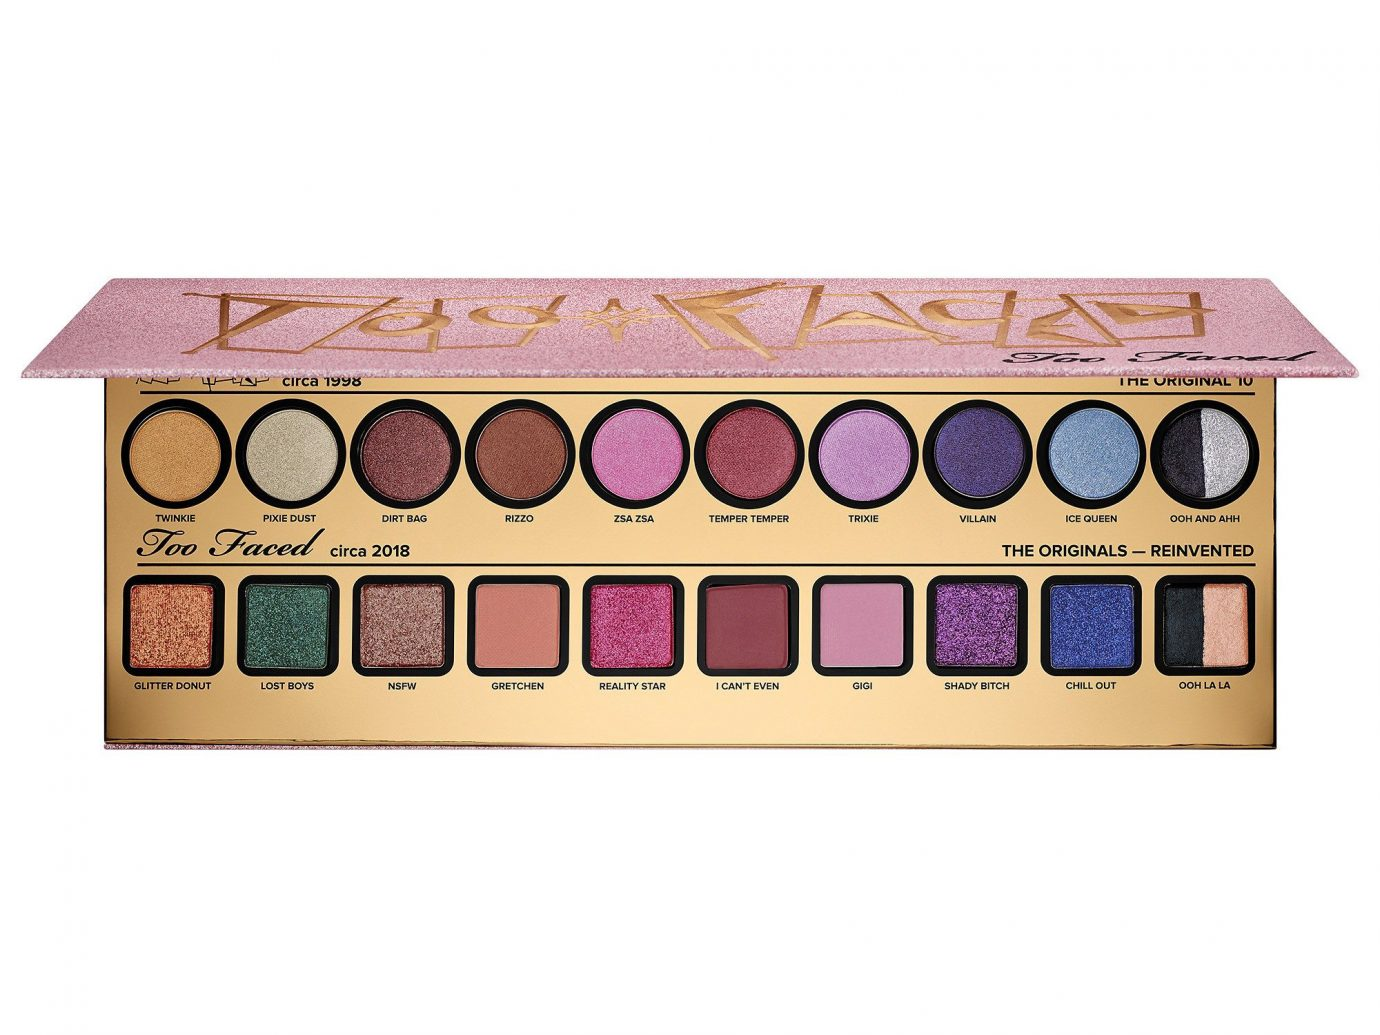 1. Too Faced Then & Now Eyeshadow Palette